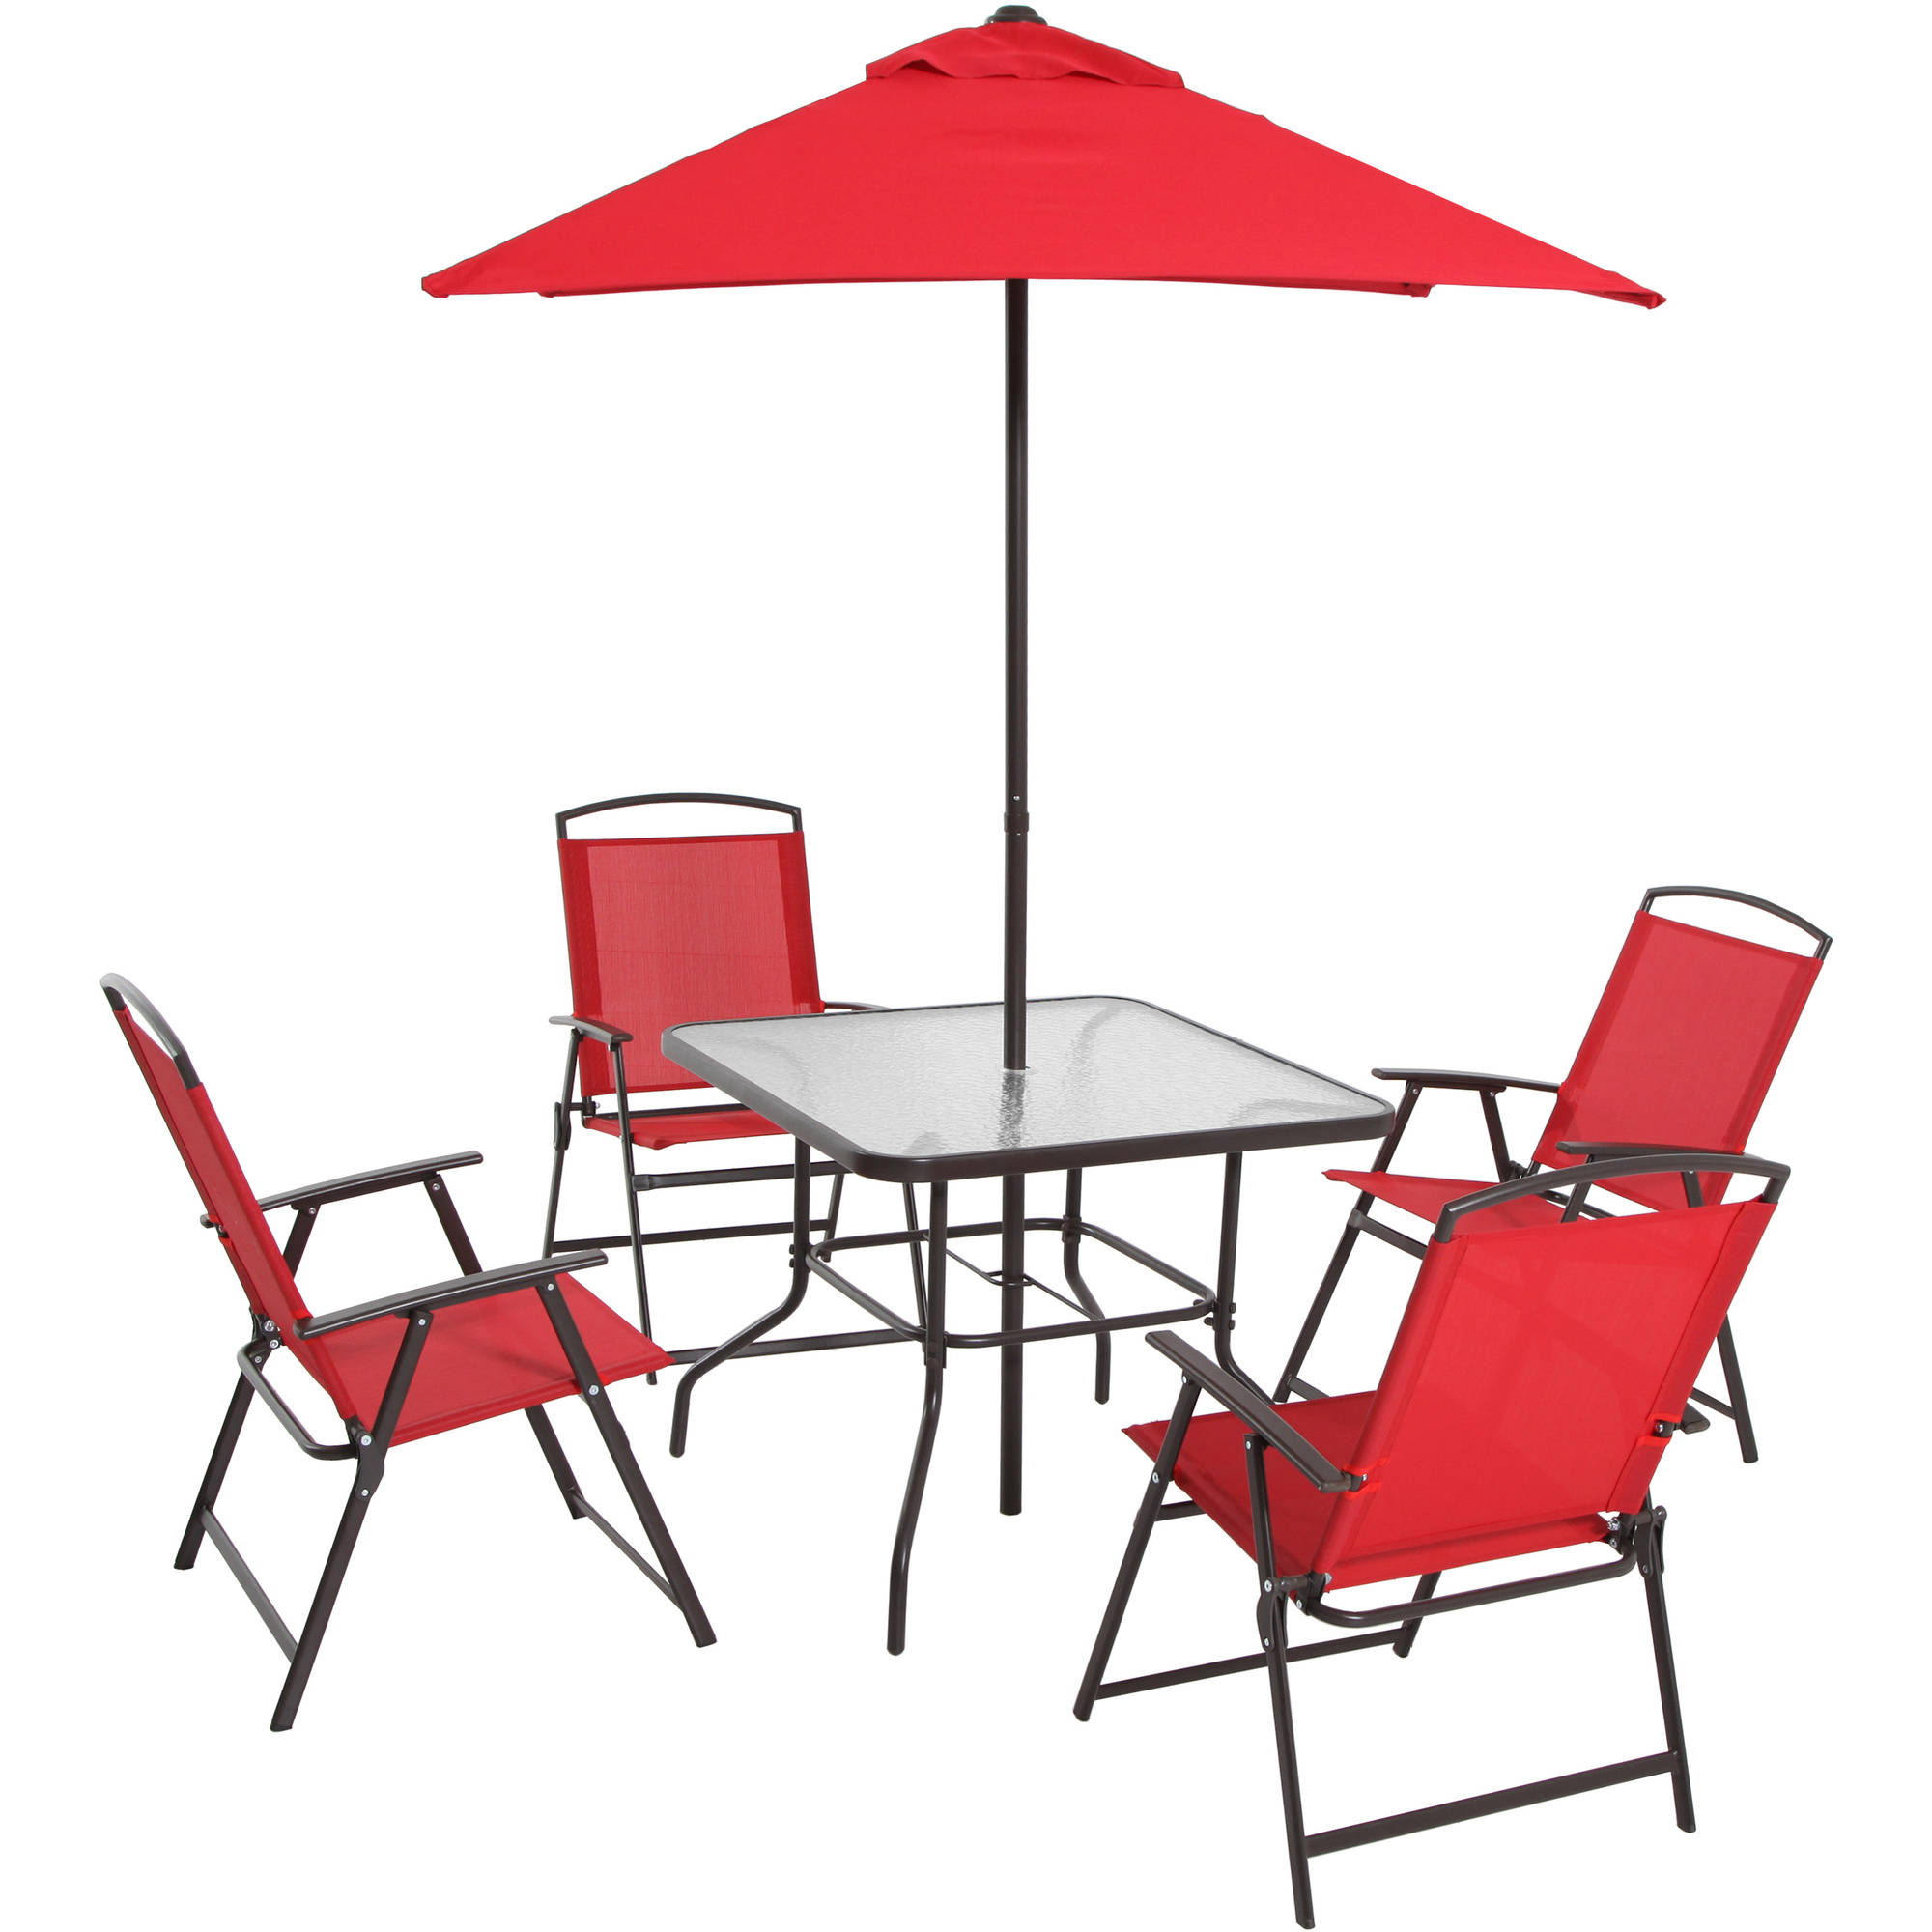 outdoor cushions depot africa meijer table dining patio south metal cover sets sears home furniture set chairs clearance chair accent full size wooden file cabinets antique oval